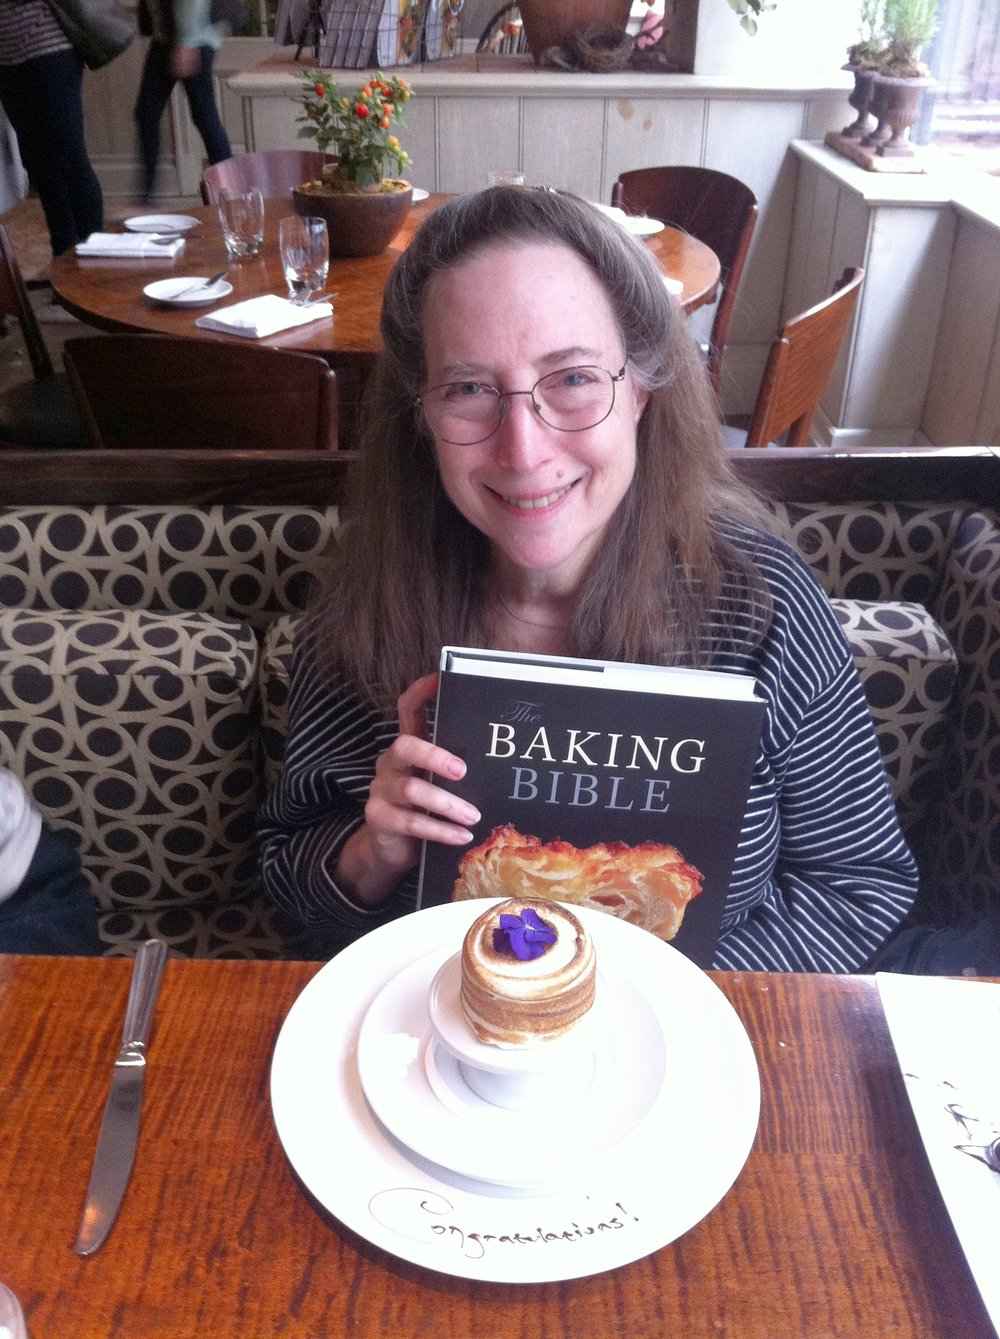 The Baking Bible arrives